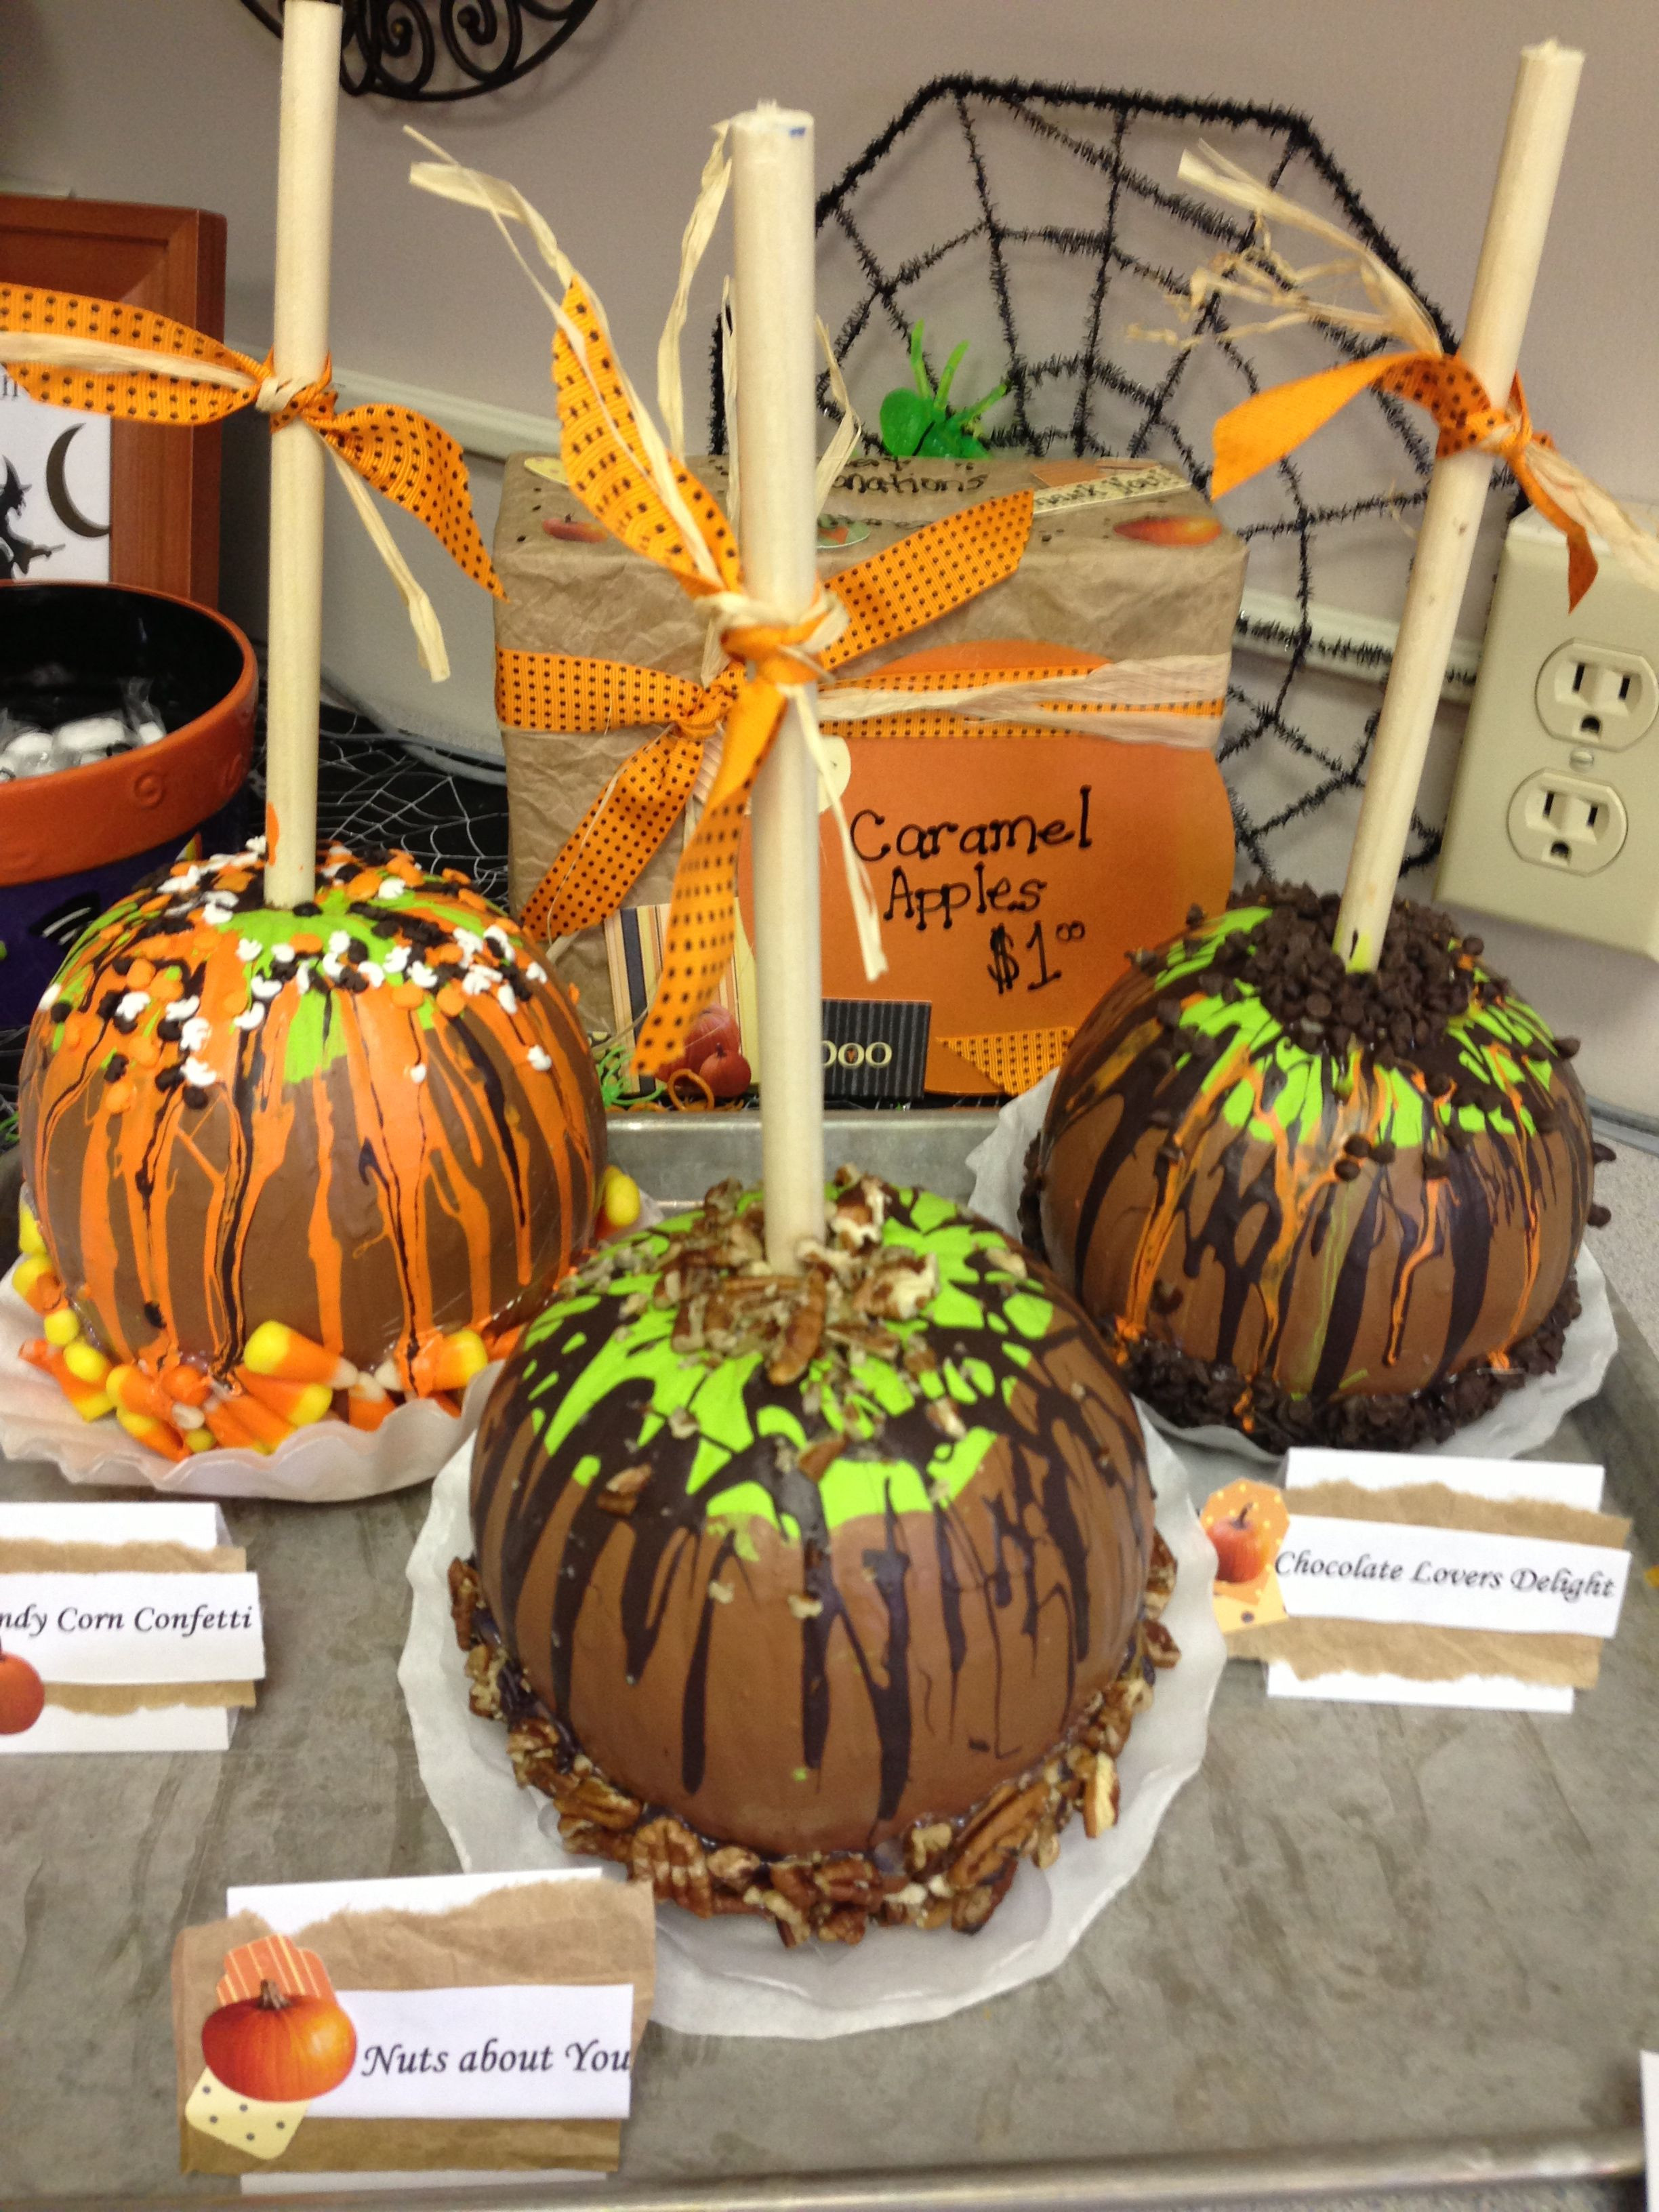 Halloween Caramel Apples Ideas  Caramel apple pumpkins I made for the pumpkin decorating